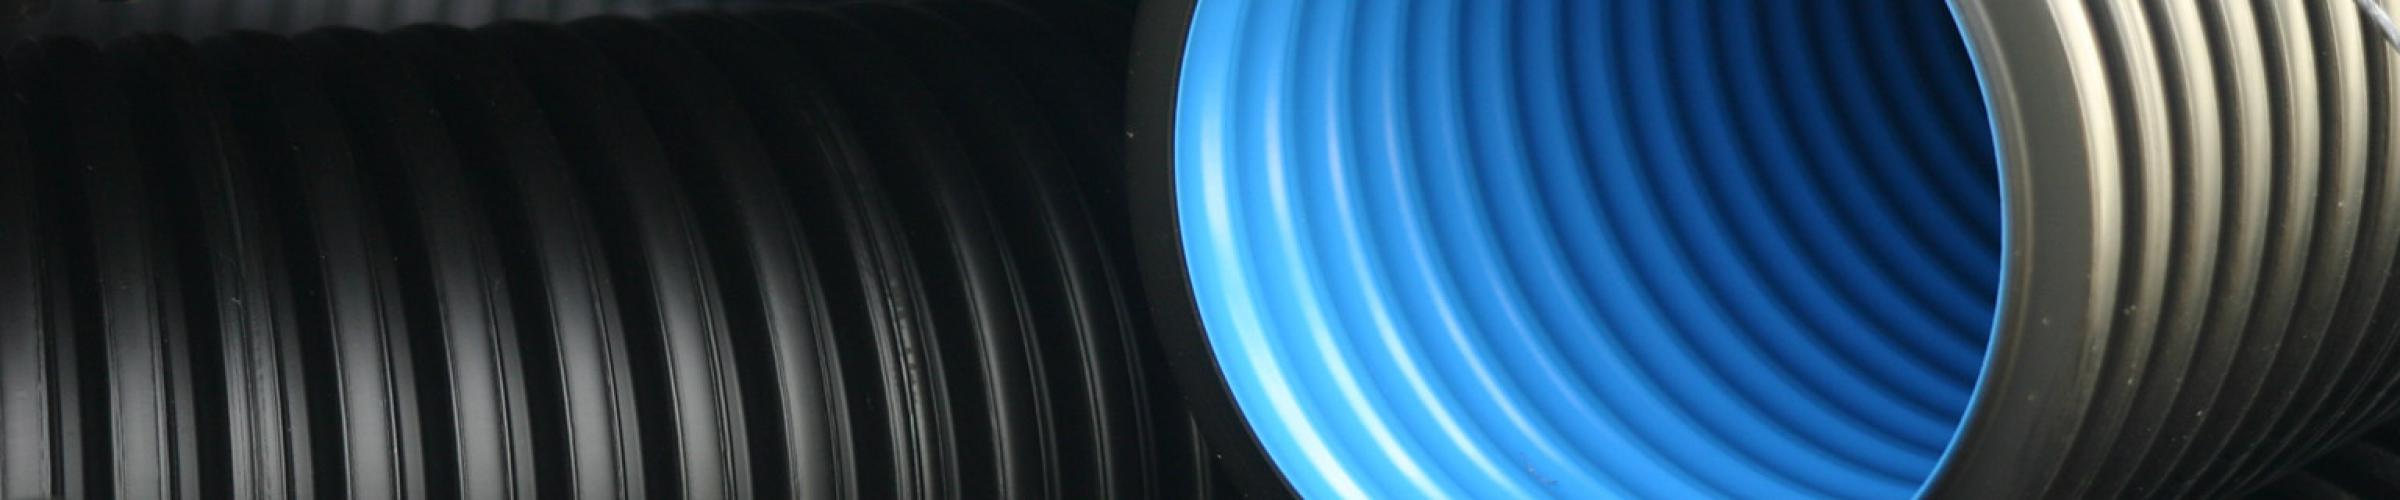 Plastics Monitoring Systems for extrusion